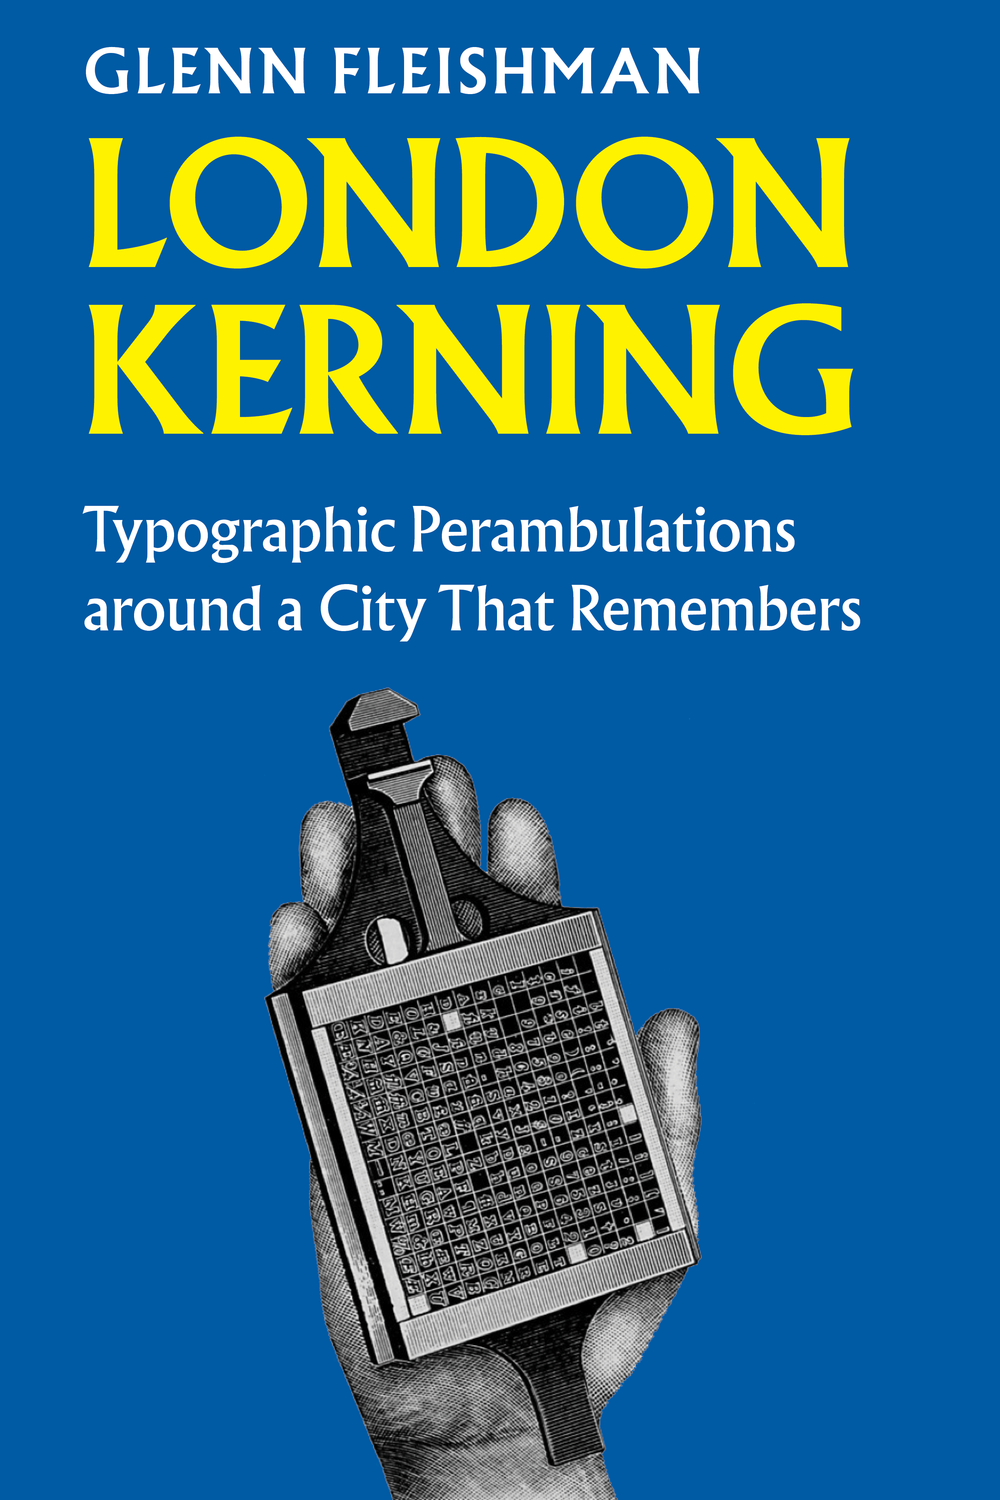 Mockup of the book cover